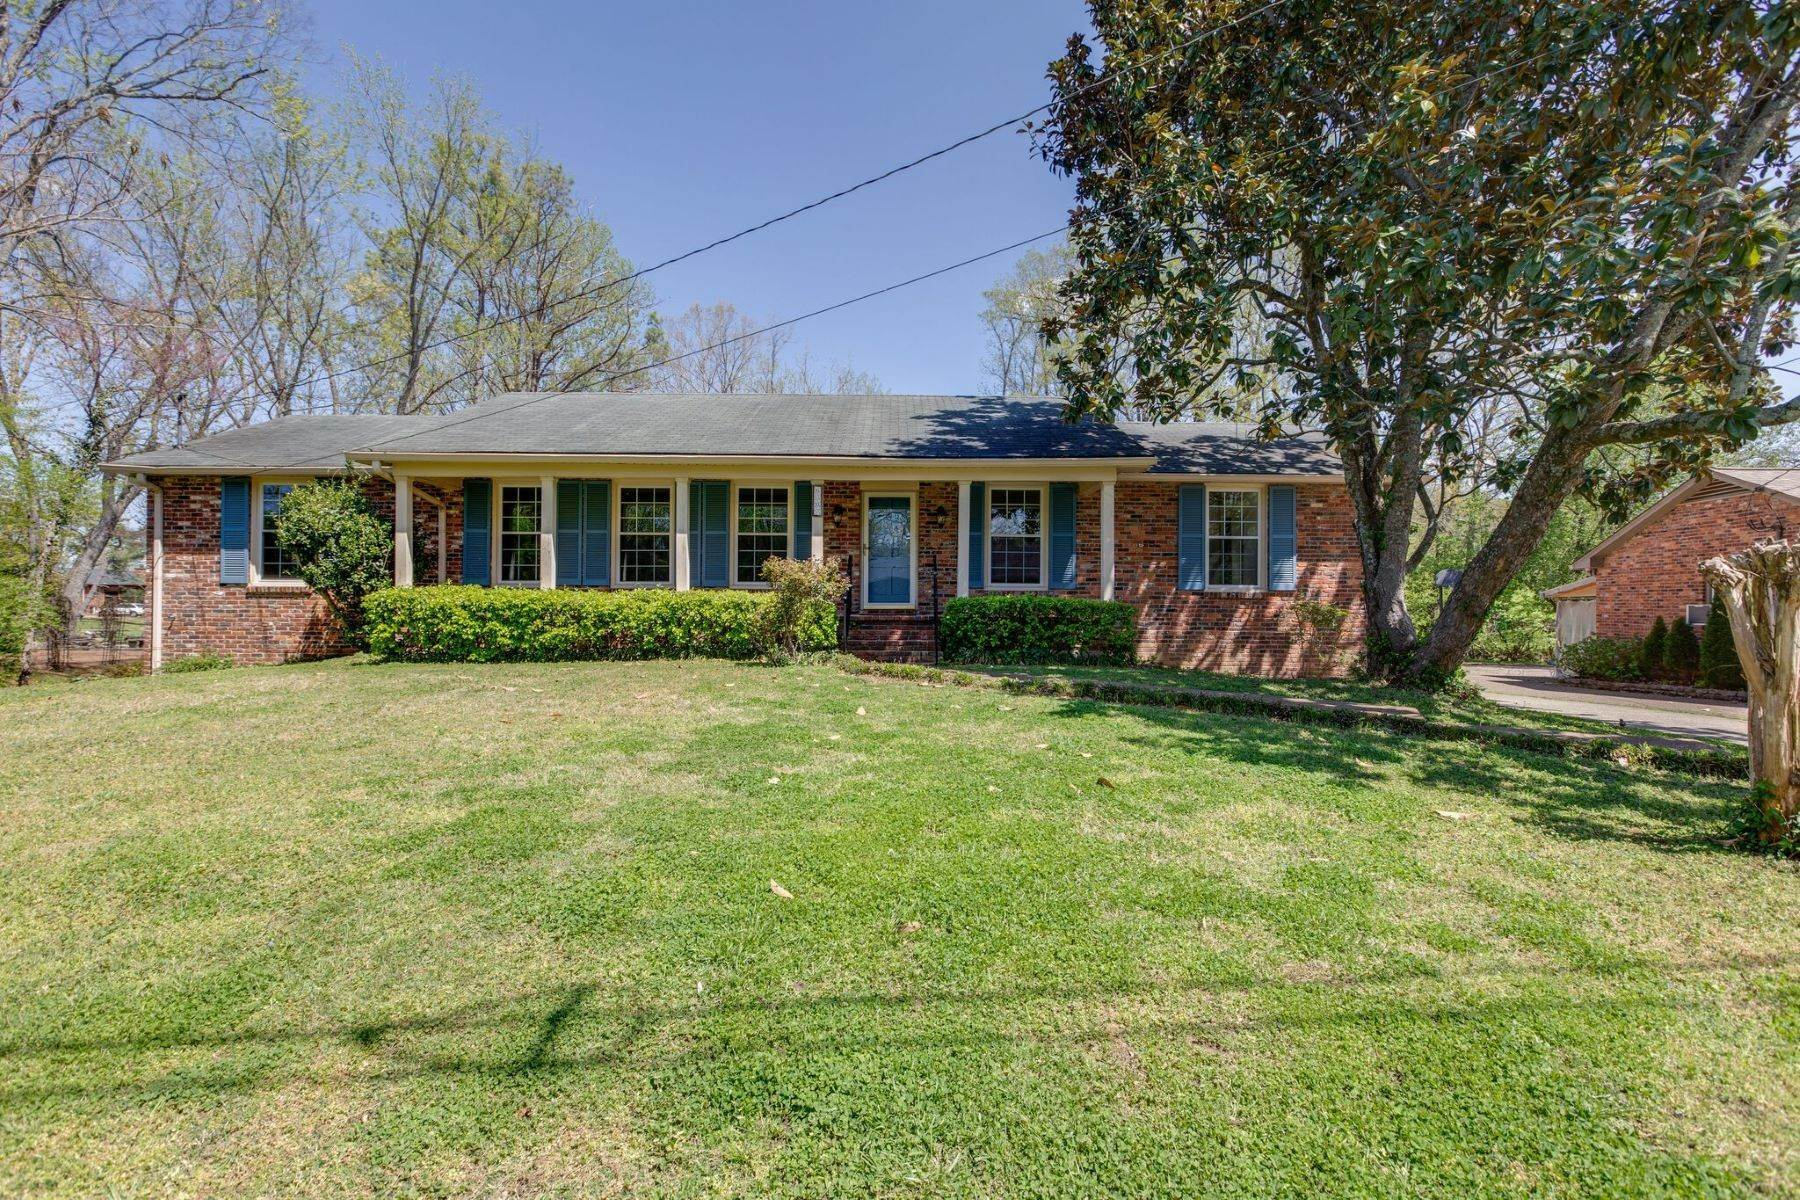 Single Family Homes for Sale at 6307 Percy Dr, Nashville, Tn, 37205 6307 Percy Dr Nashville, Tennessee 37205 United States